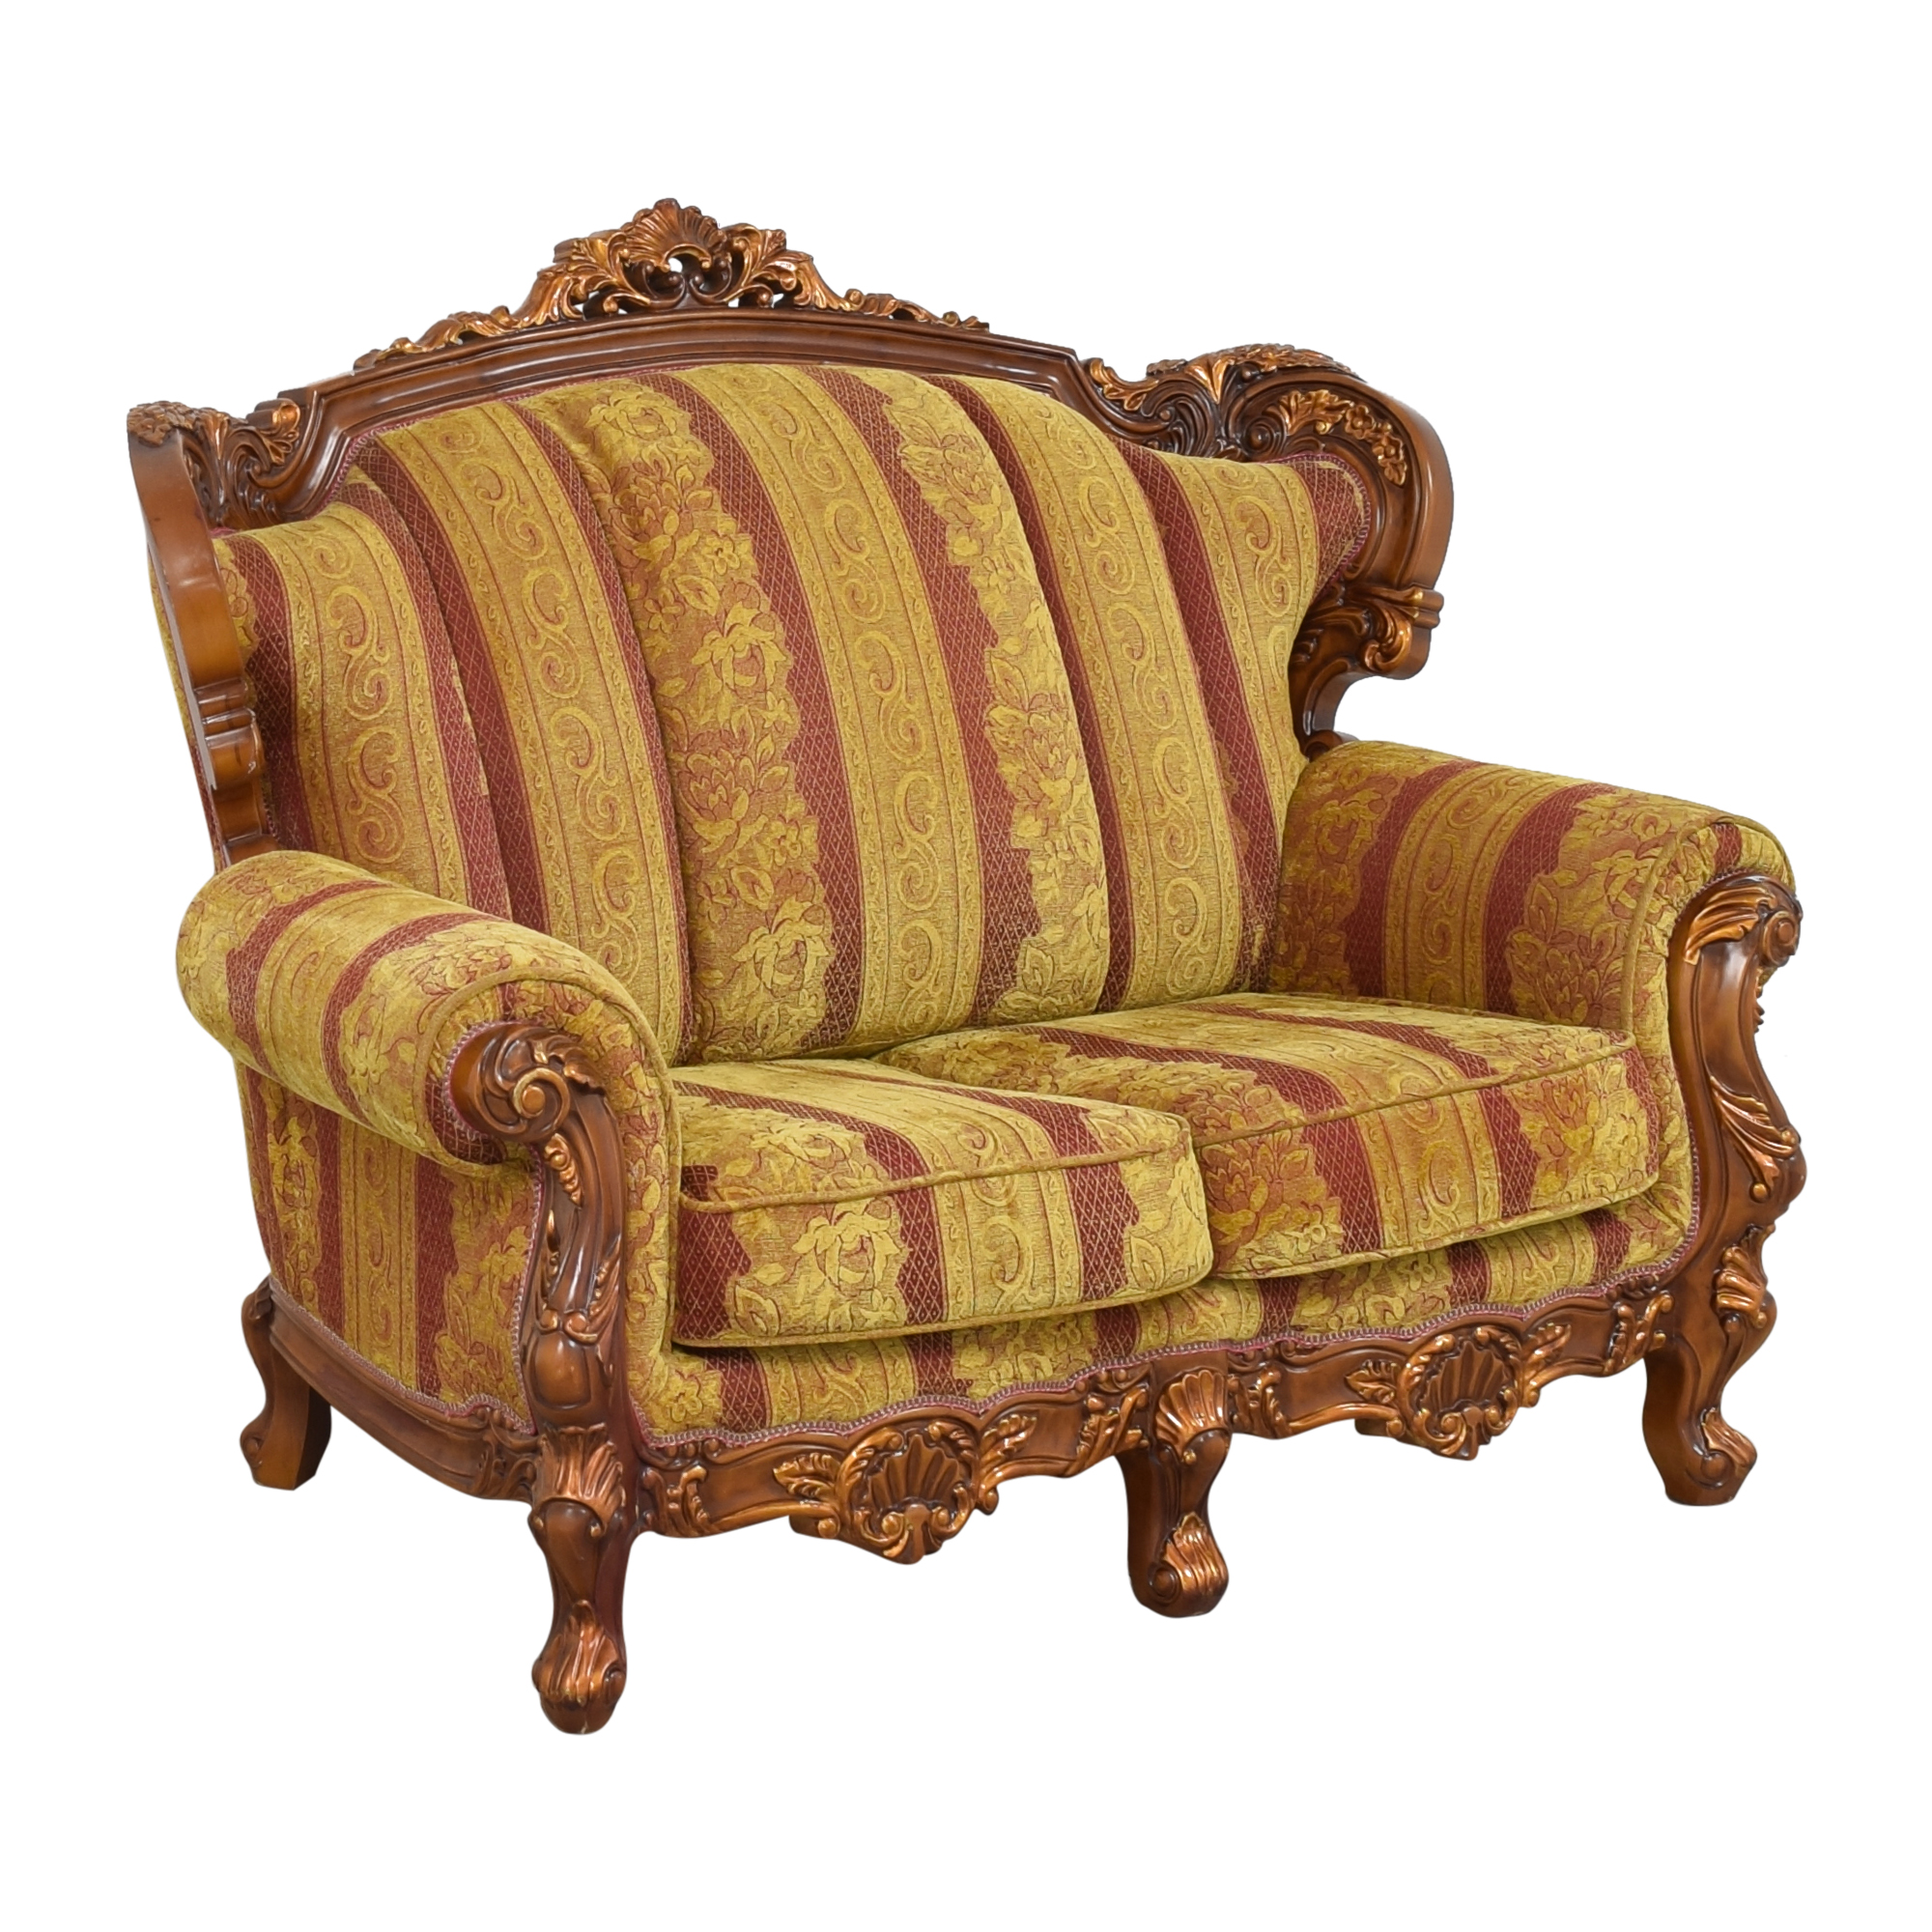 Ornate French-Style Loveseat Sofas